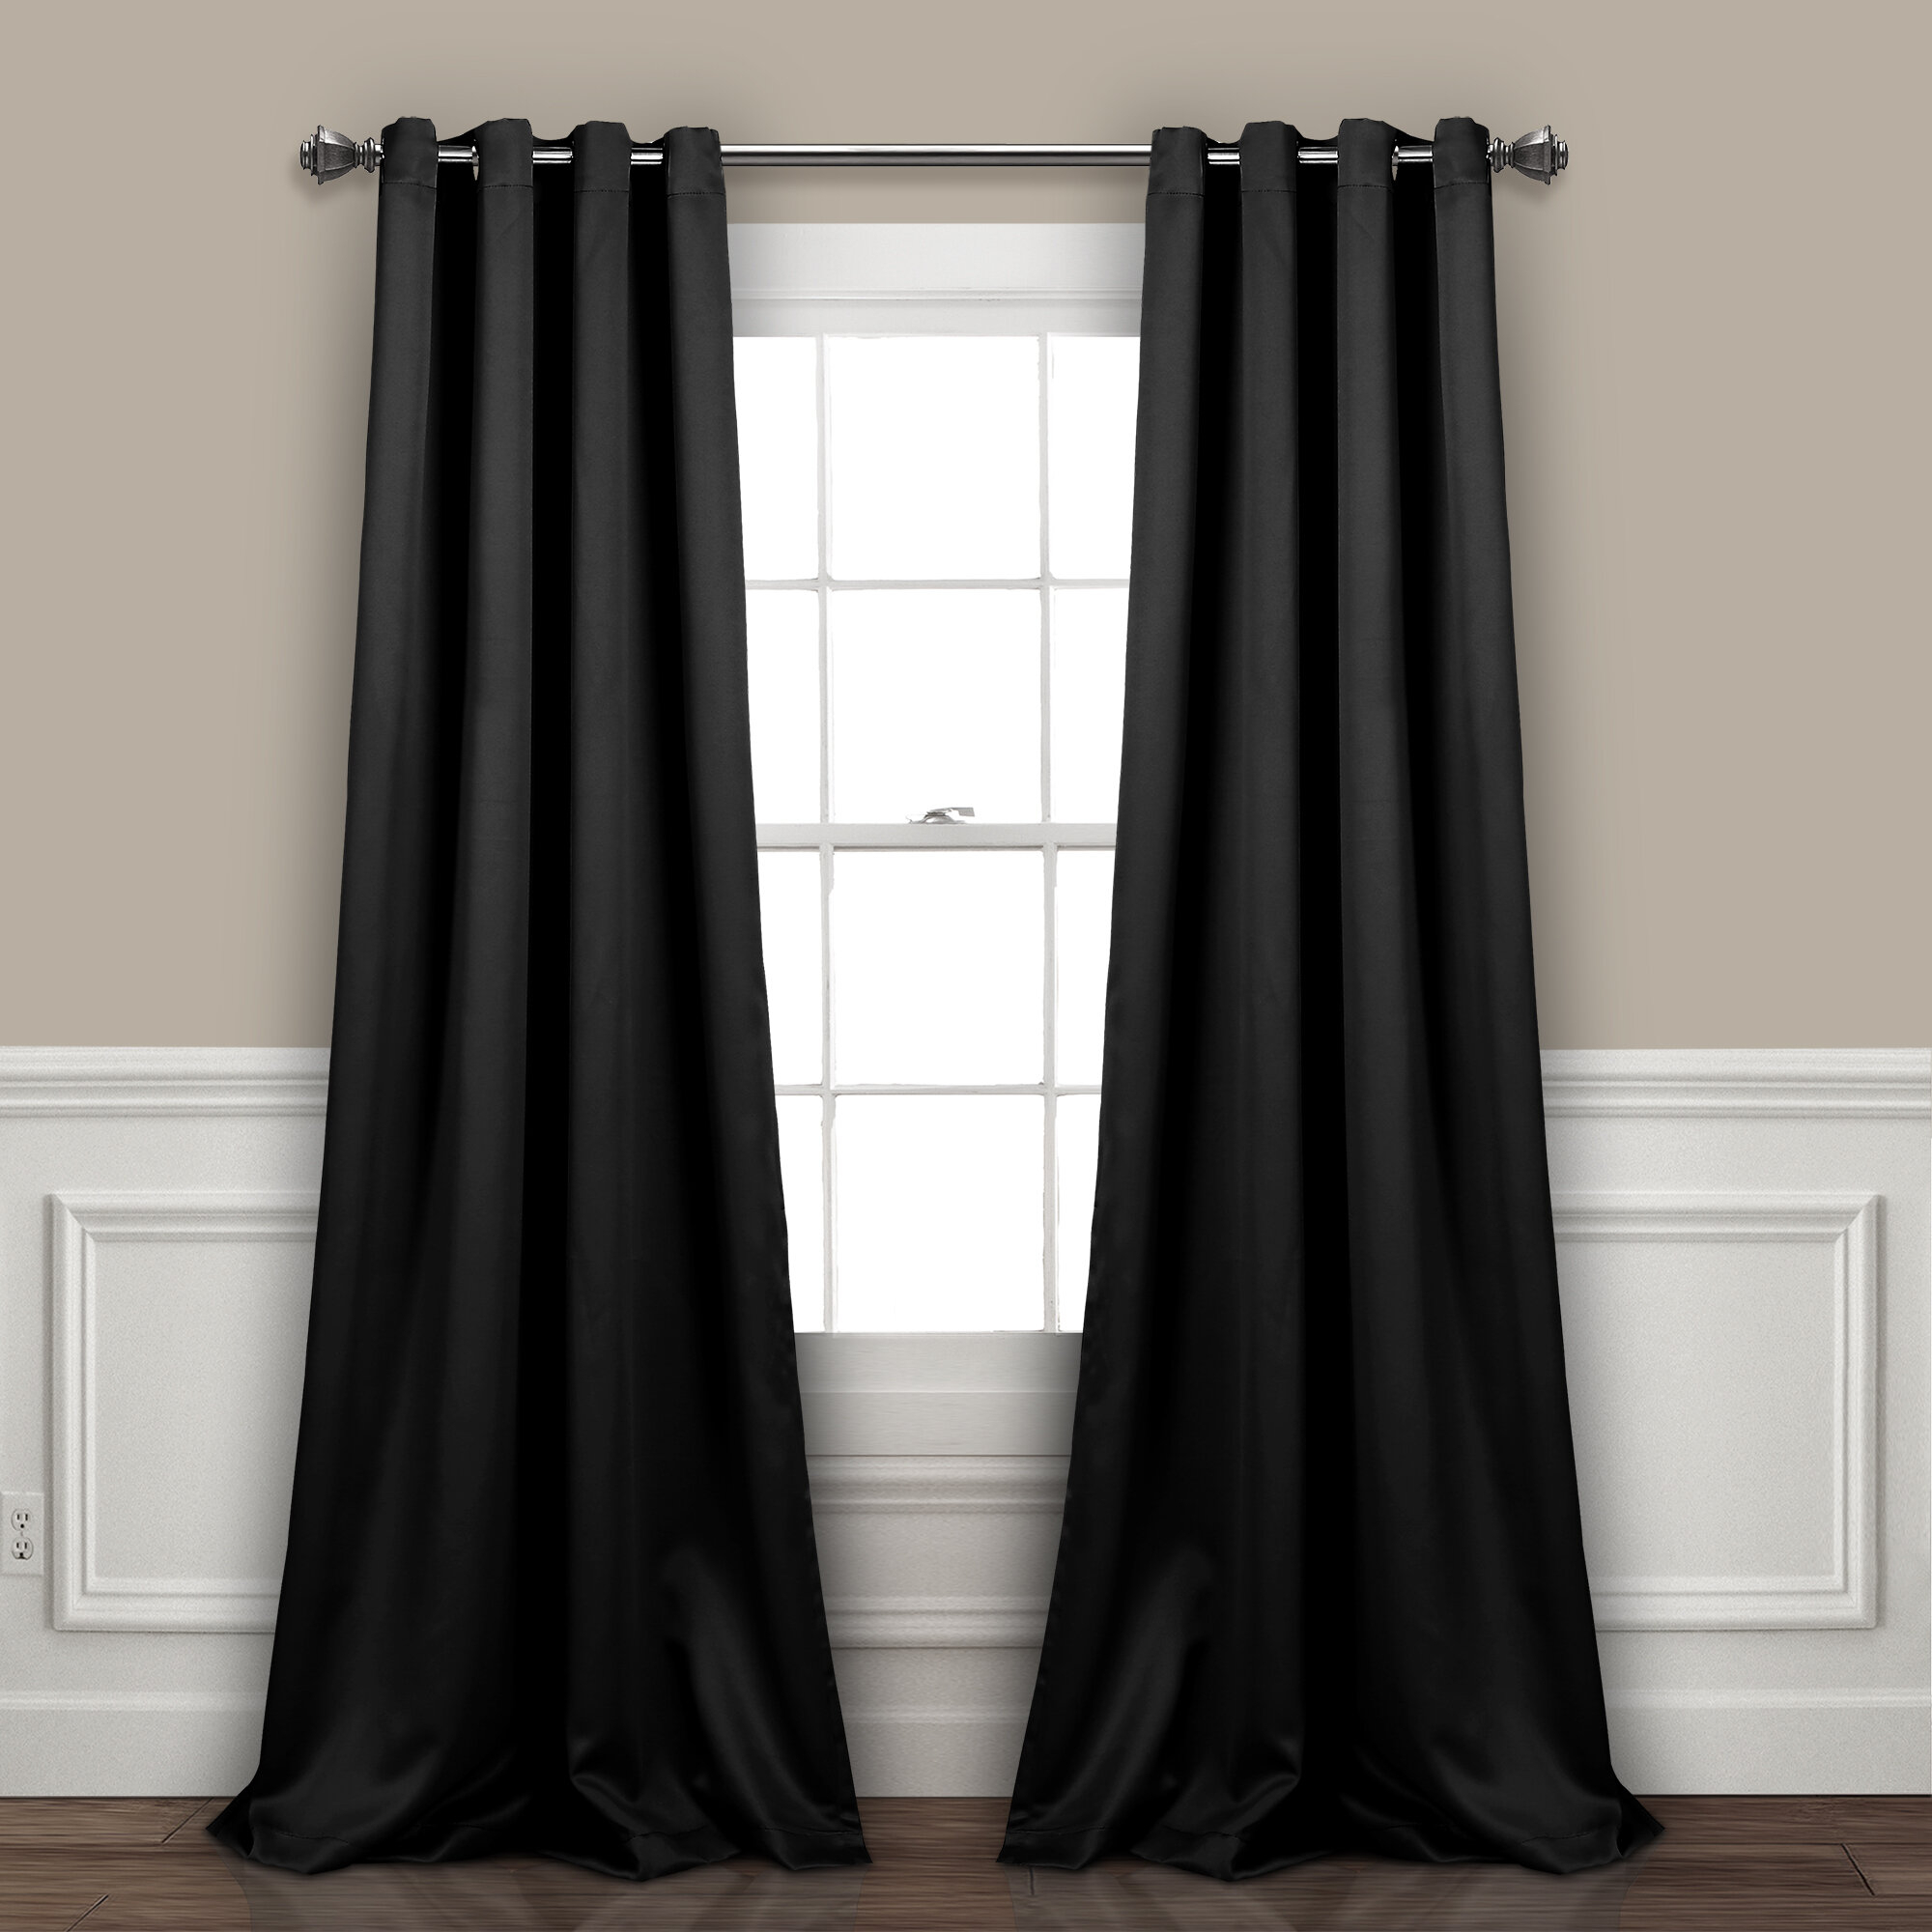 Ketterman Solid Thermal Blackout Grommet Window Panel Pair With Thermal Insulated Blackout Grommet Top Curtain Panel Pairs (Gallery 30 of 30)